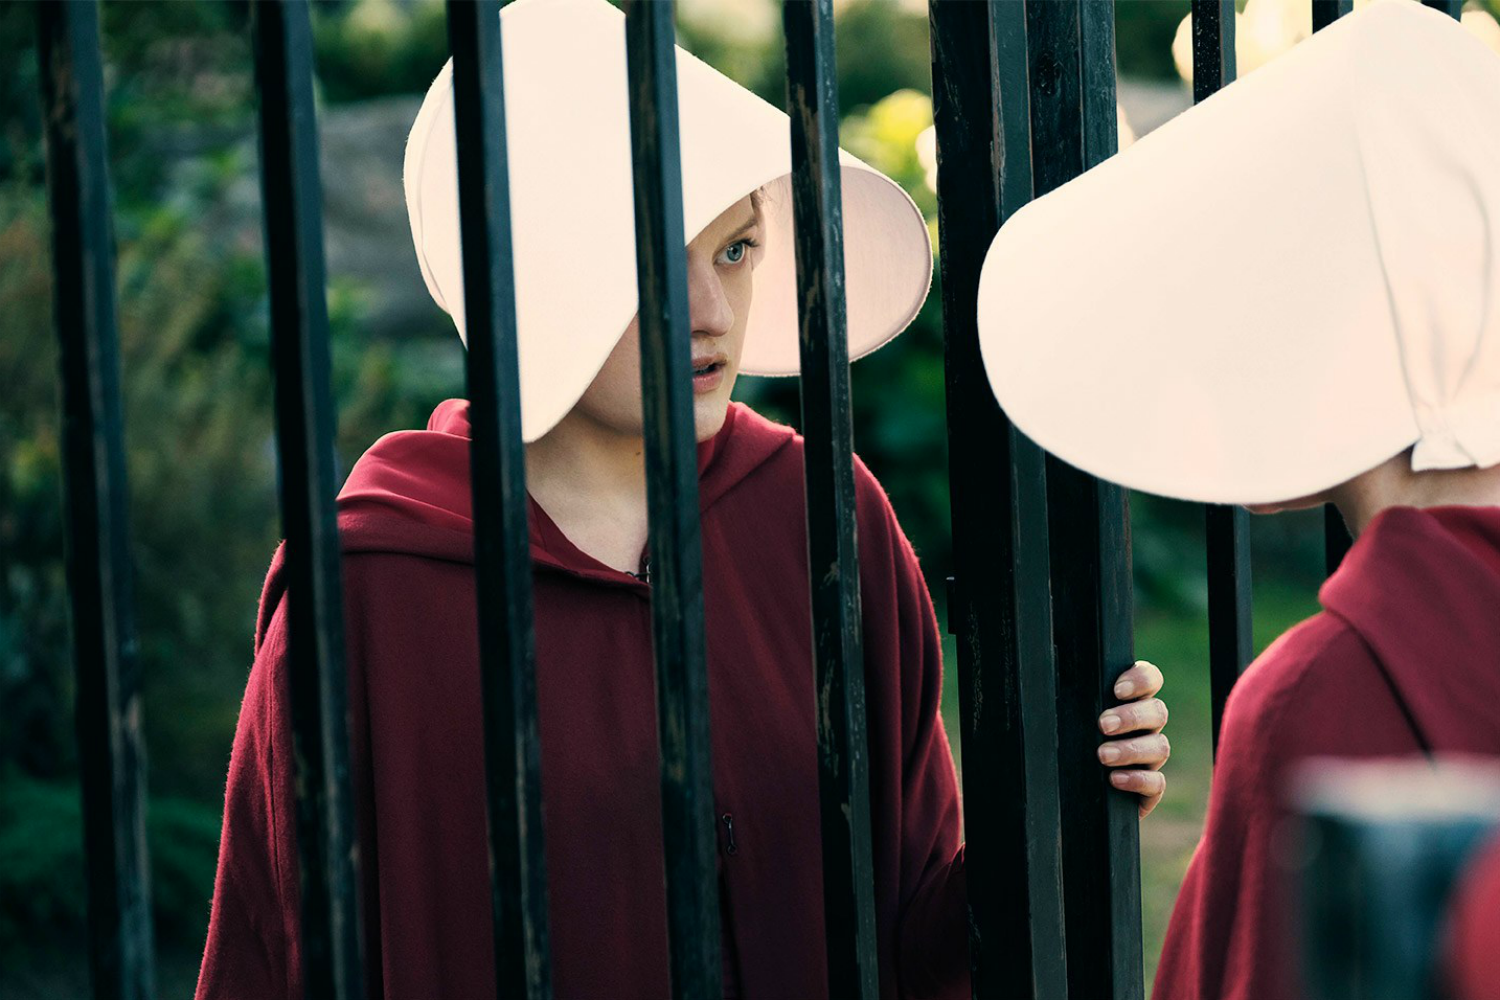 TV adaptation of Margaret Atwood's 'The Handmaid's Tale' renewed for 2nd season